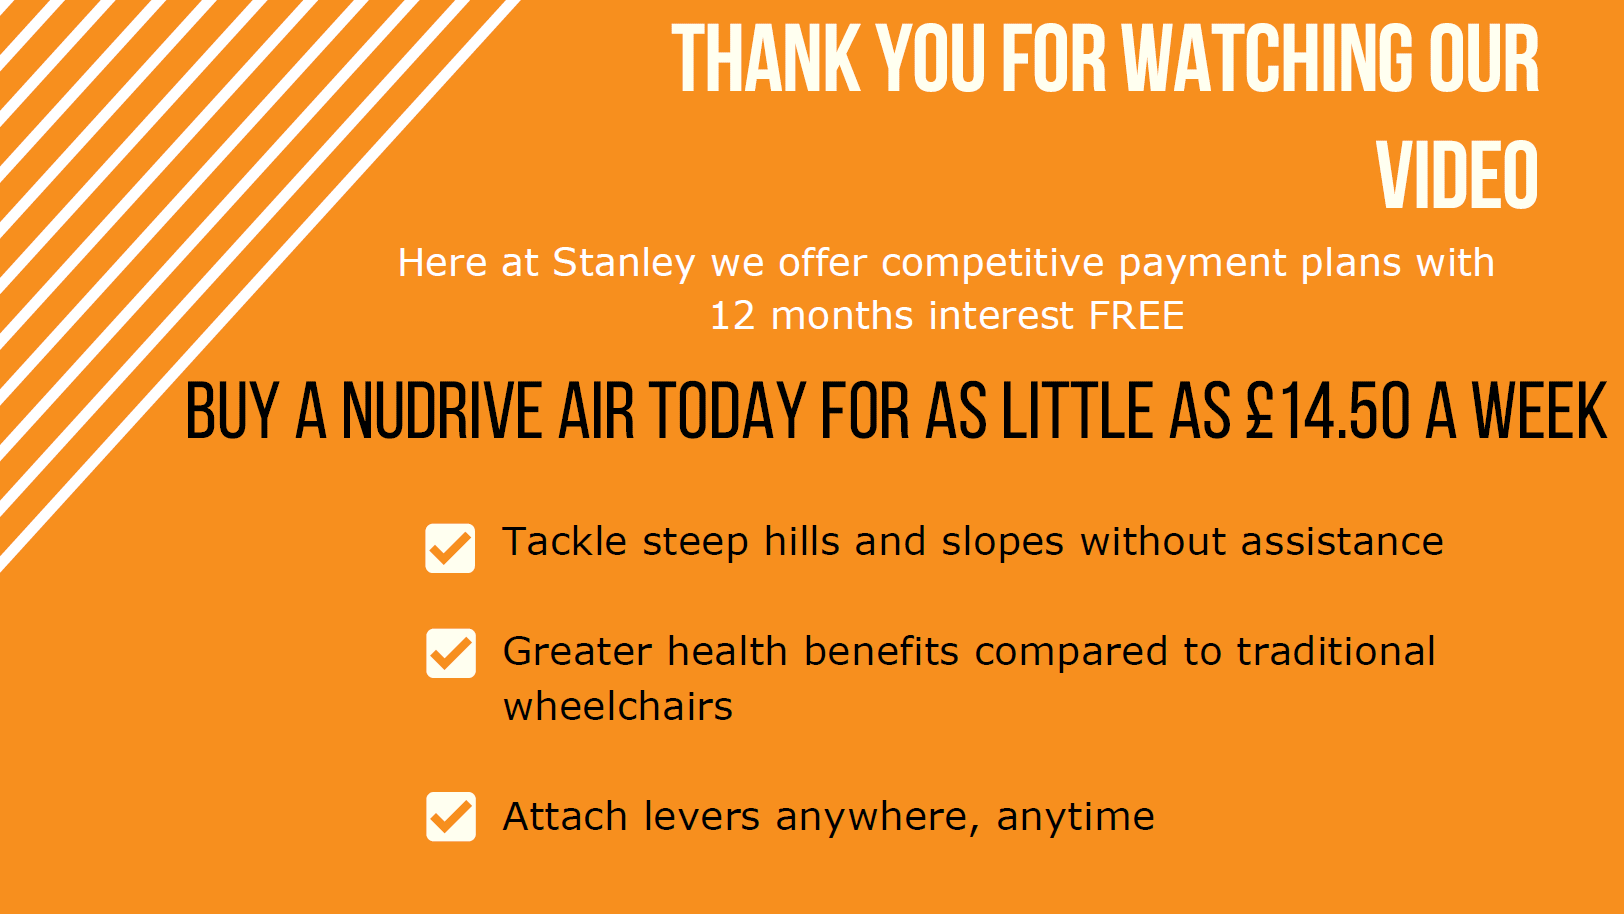 Thank you for watching our video. Buy a NuDrive AIR today for as little as £14.50 a week. For more information please contact us on 0800 298 2980. Alternatively, you can email us at sales@stanleyhandling.co.uk